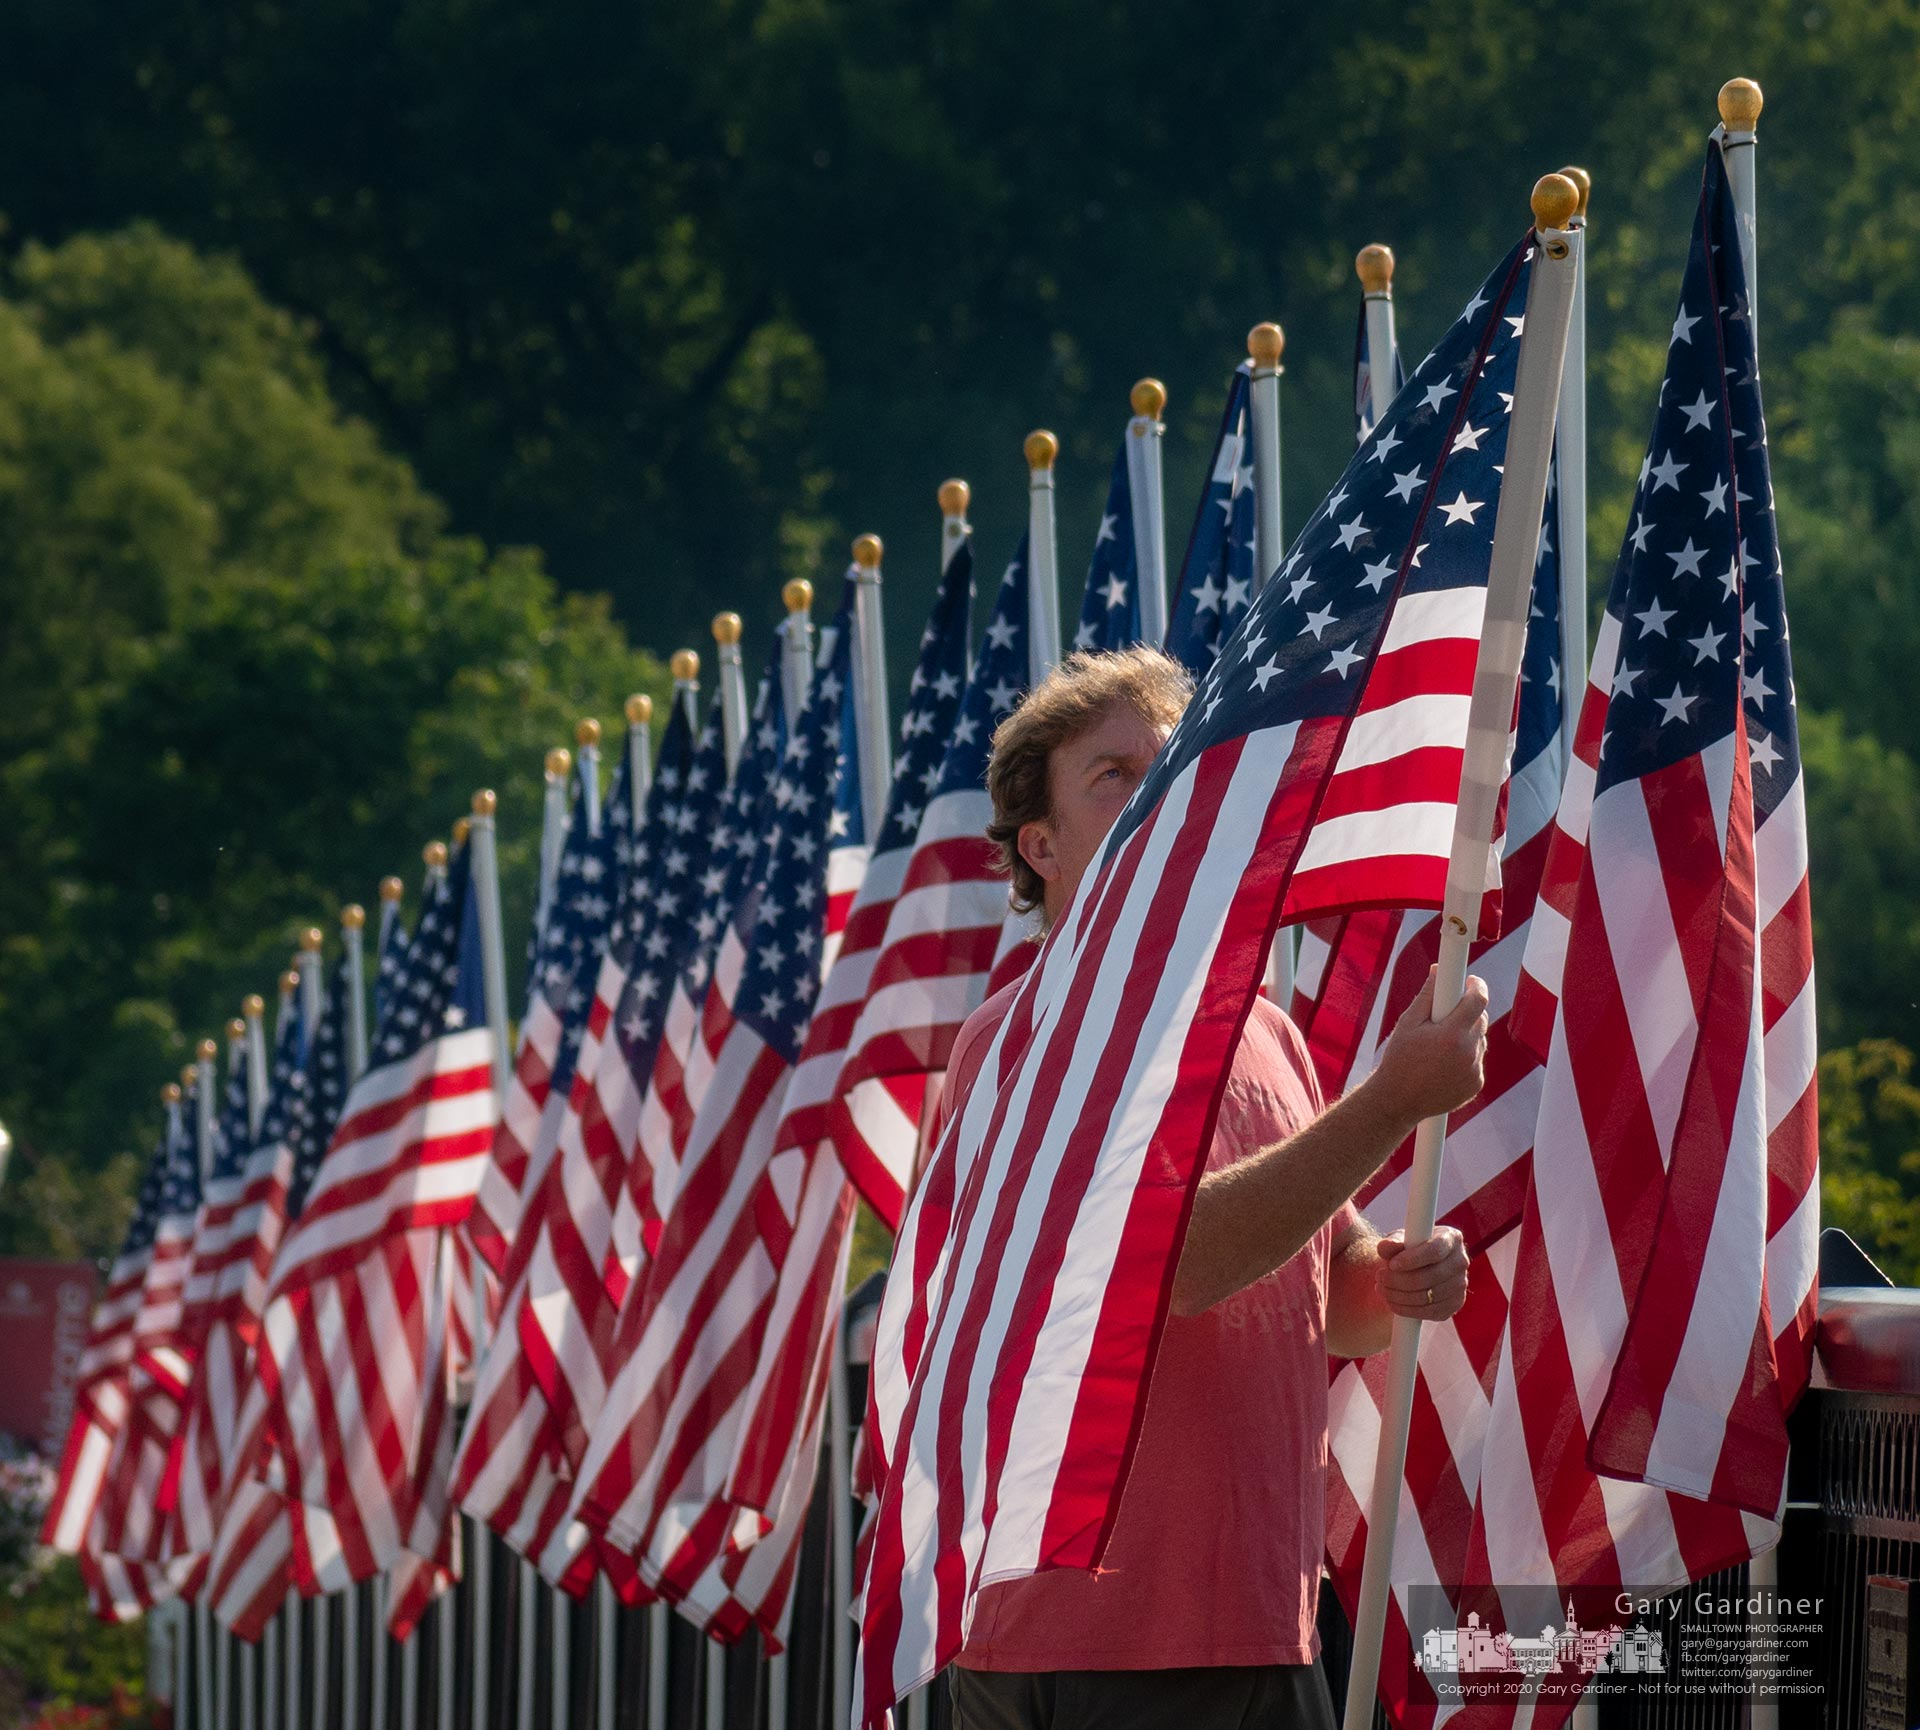 Volunteers place flags along the Main Street bridge sidewalks over Alum Creek marking ceremonies planned for the anniversary of the Sept. 11 terrorist attacks on New York and Washington. My Final Photo for Sept. 9, 2020.